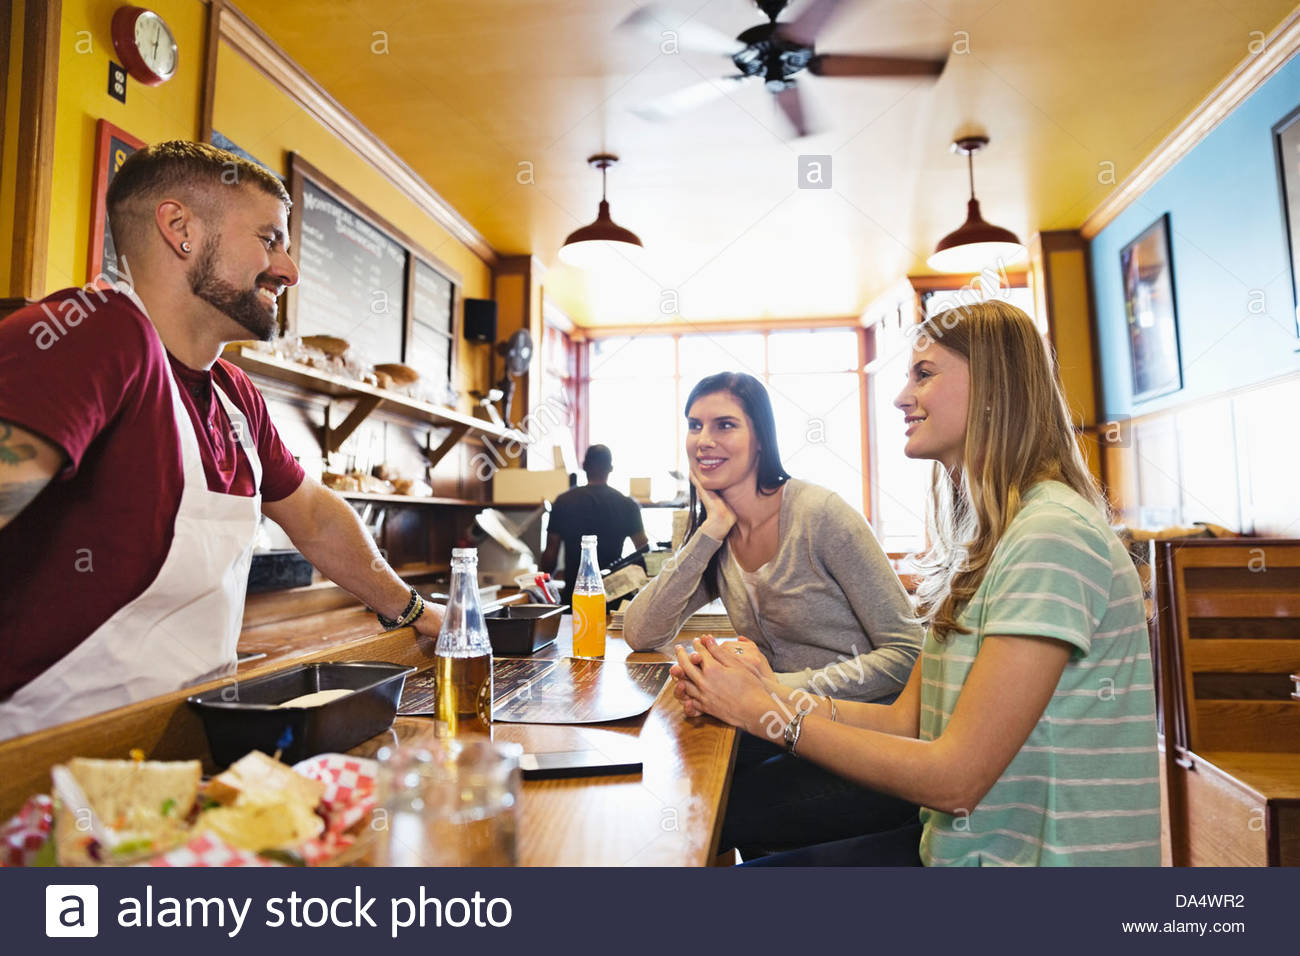 deli counter stock photos deli counter stock images alamy male deli owner talking to customers at deli counter stock image